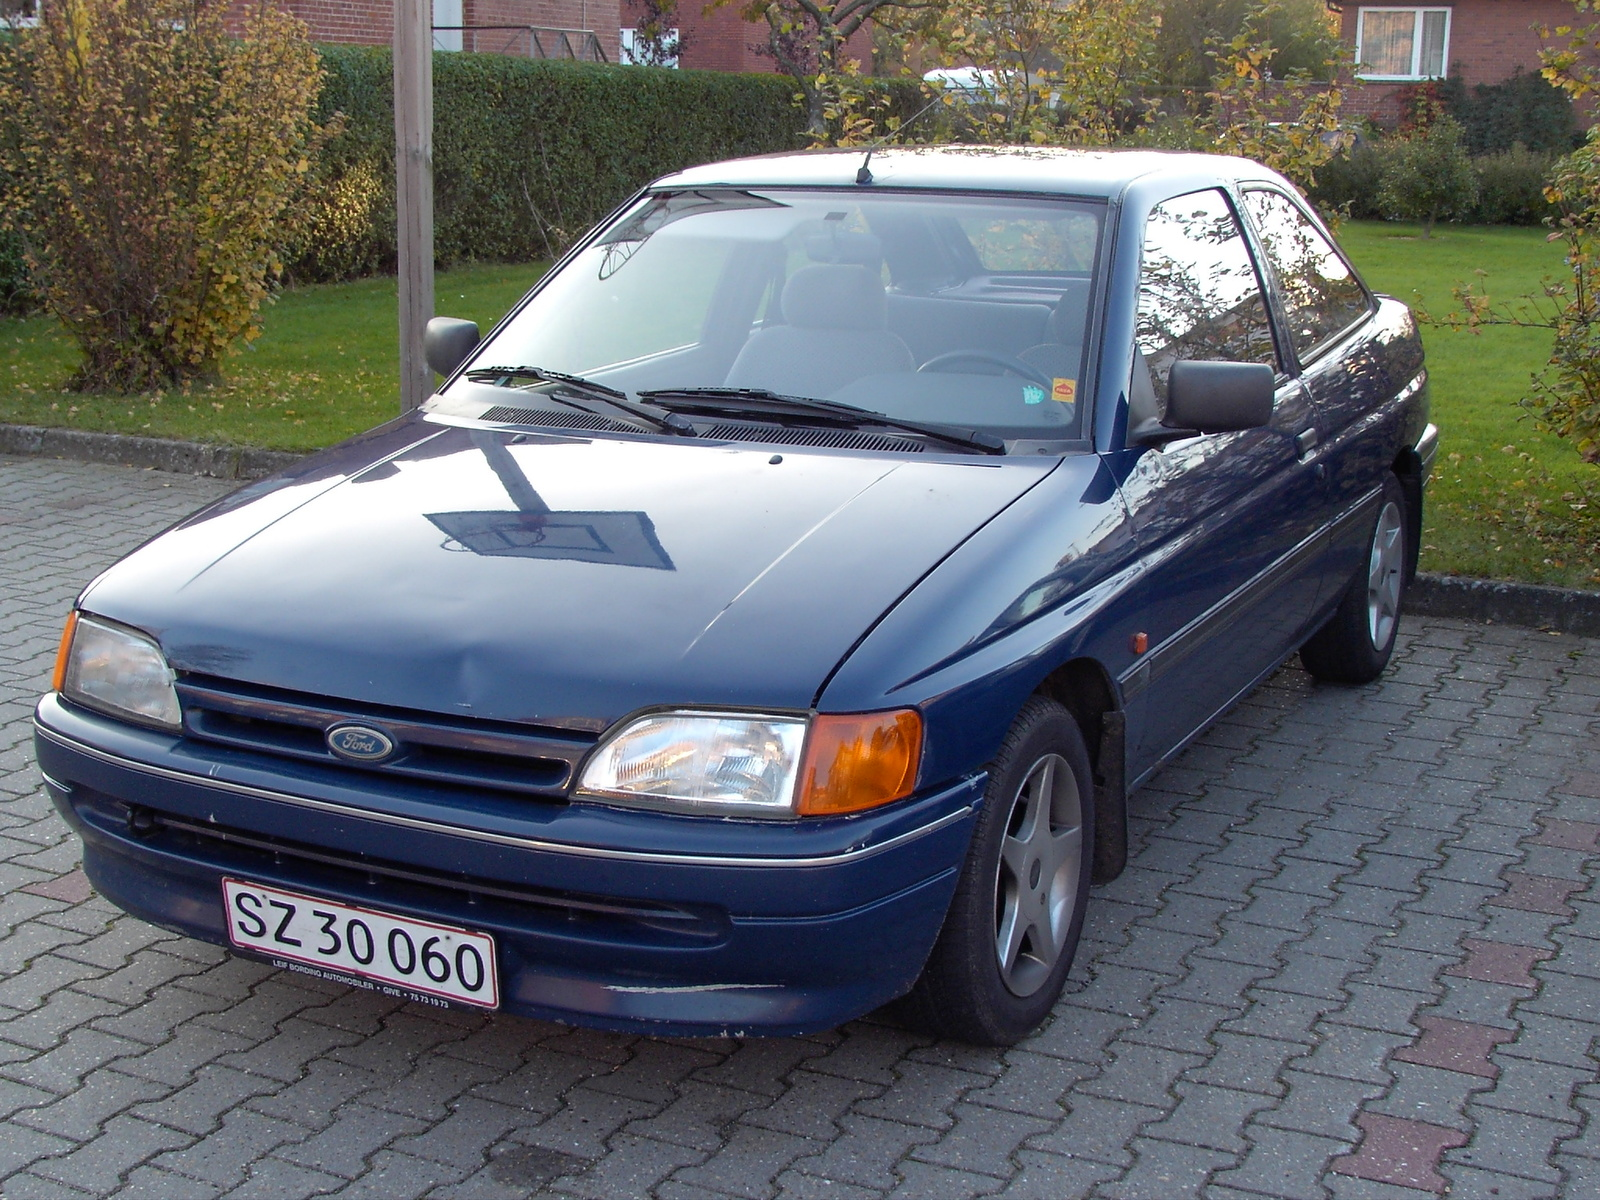 1991 Ford Escort Information And Photos Zombiedrive